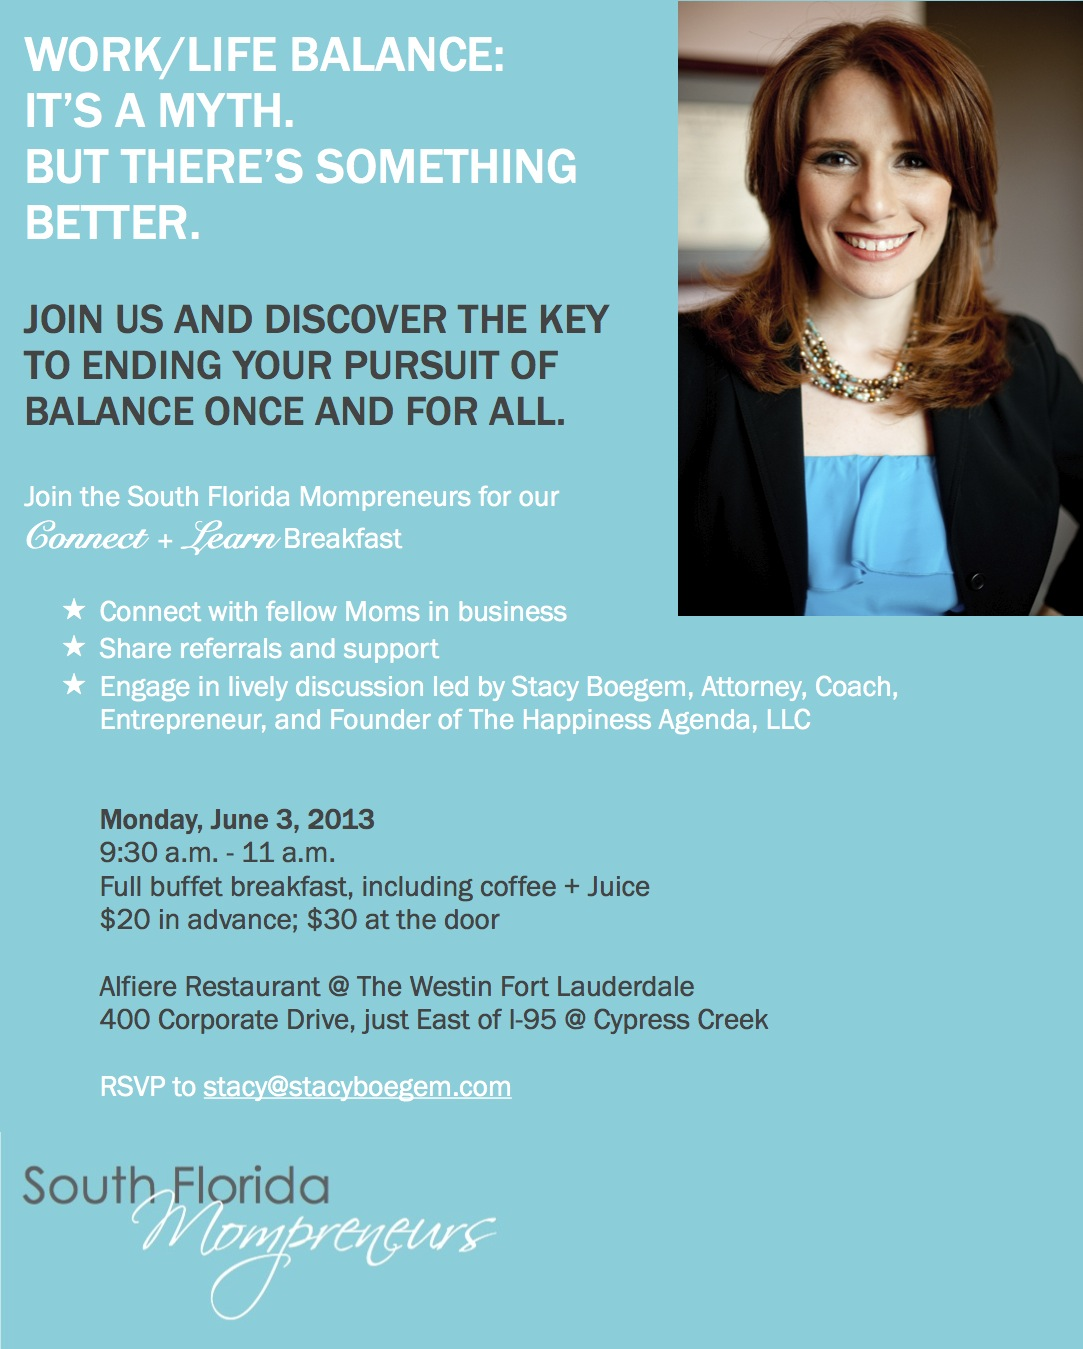 WORK/LIFE BALANCE: IT'S A MYTH. Details for South Florida Mompreneurs Connect + Learn Breakfast, hosted by Stacy Boegem